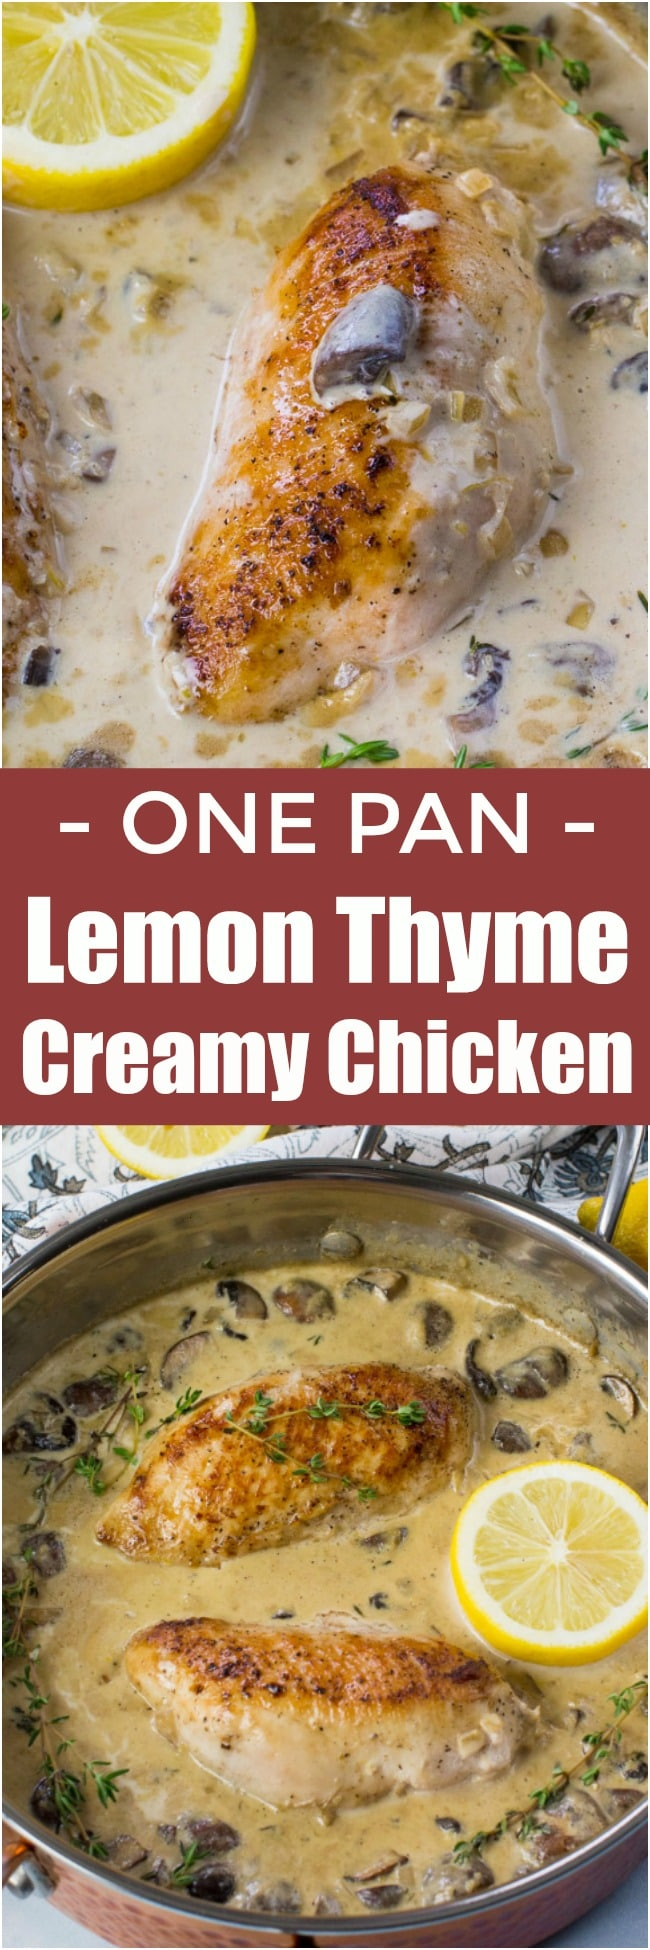 One Pan Creamy Lemon Thyme Chicken is made with white wine, lemon zest, cream, mushrooms and thyme. Ready in just 30 minutes.